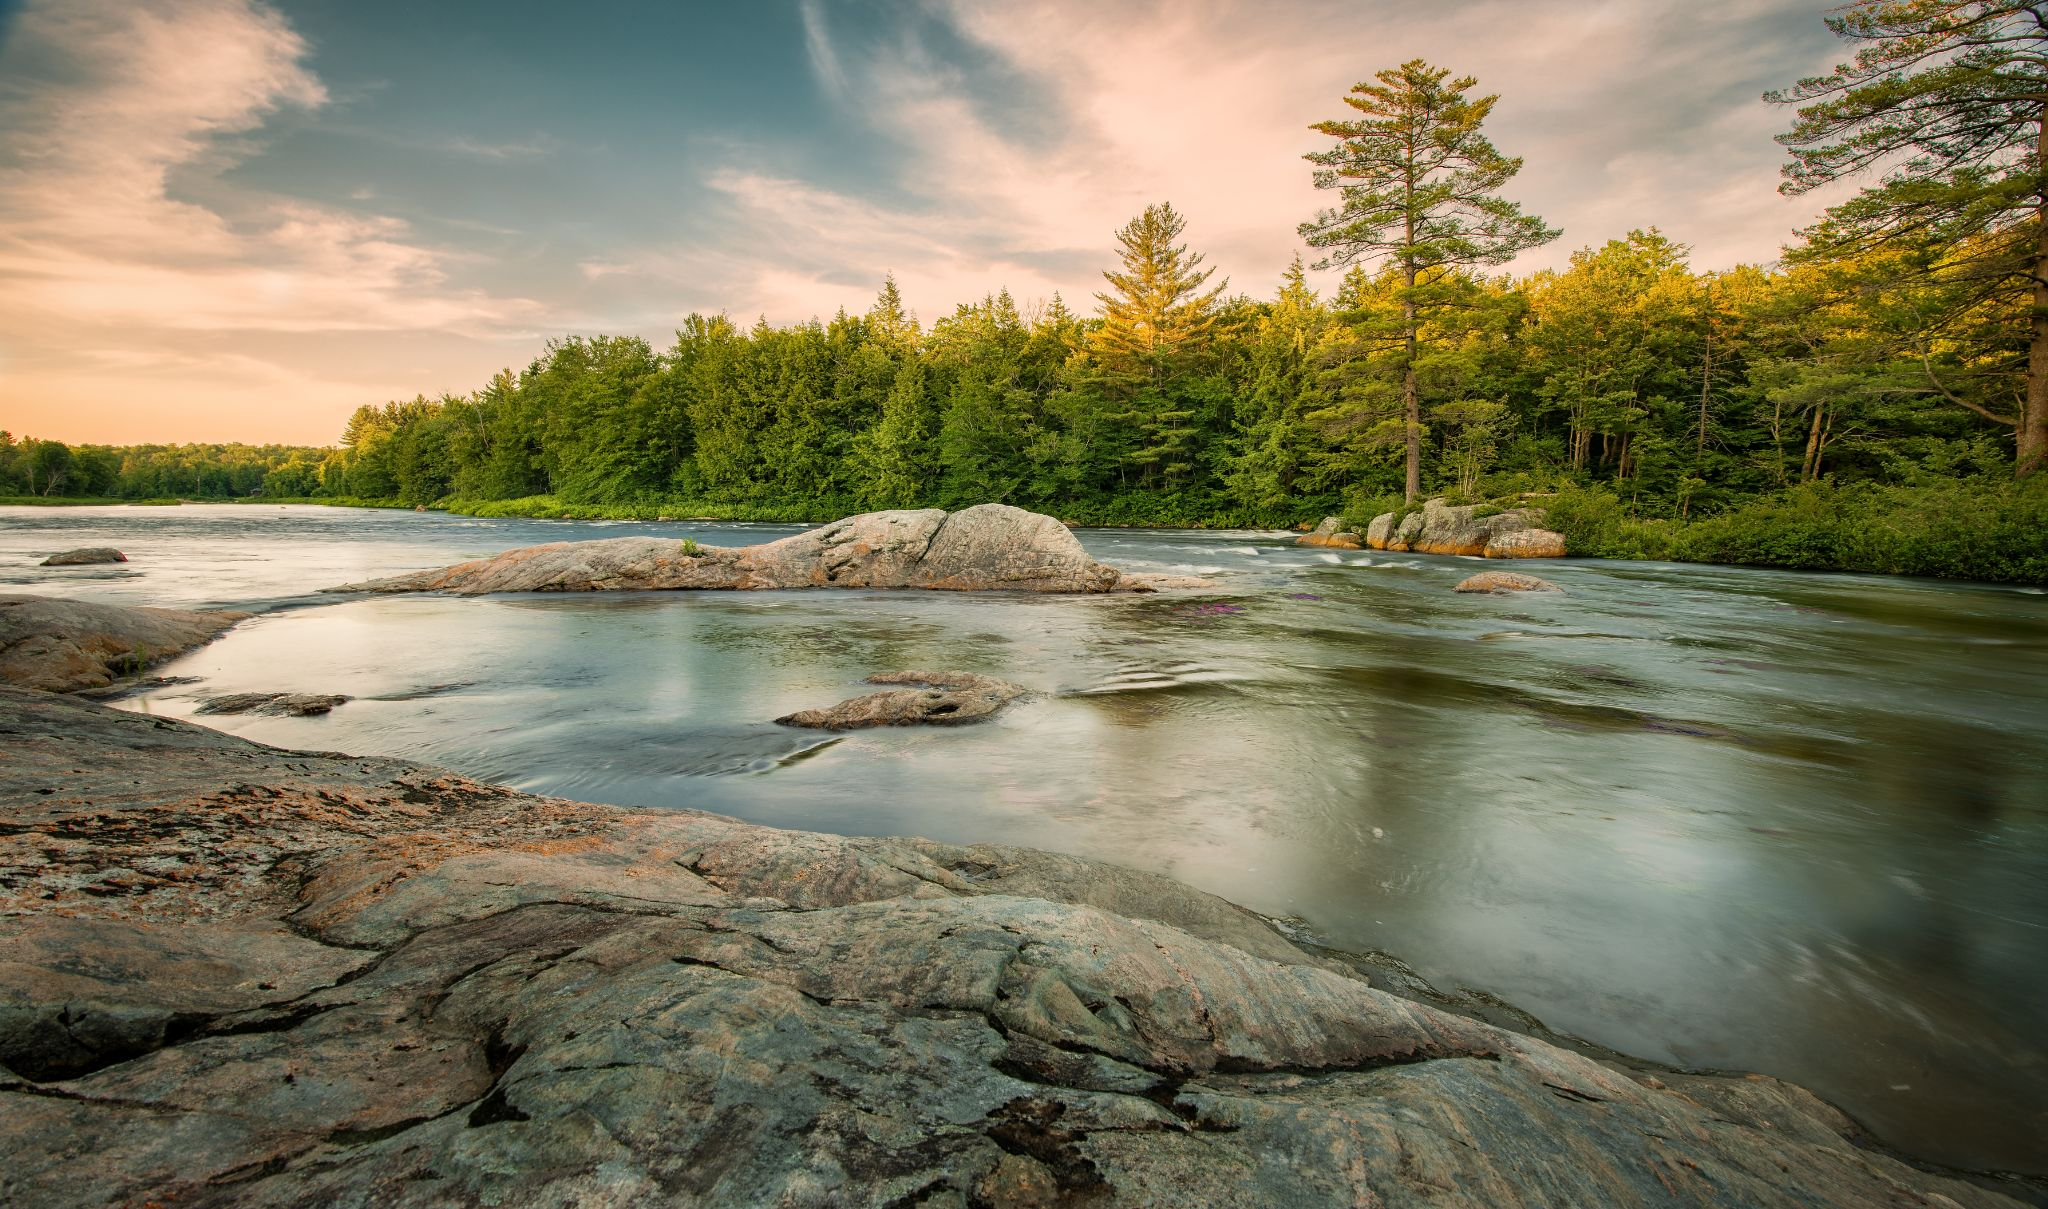 Twilight at Moose River by BrentMackey